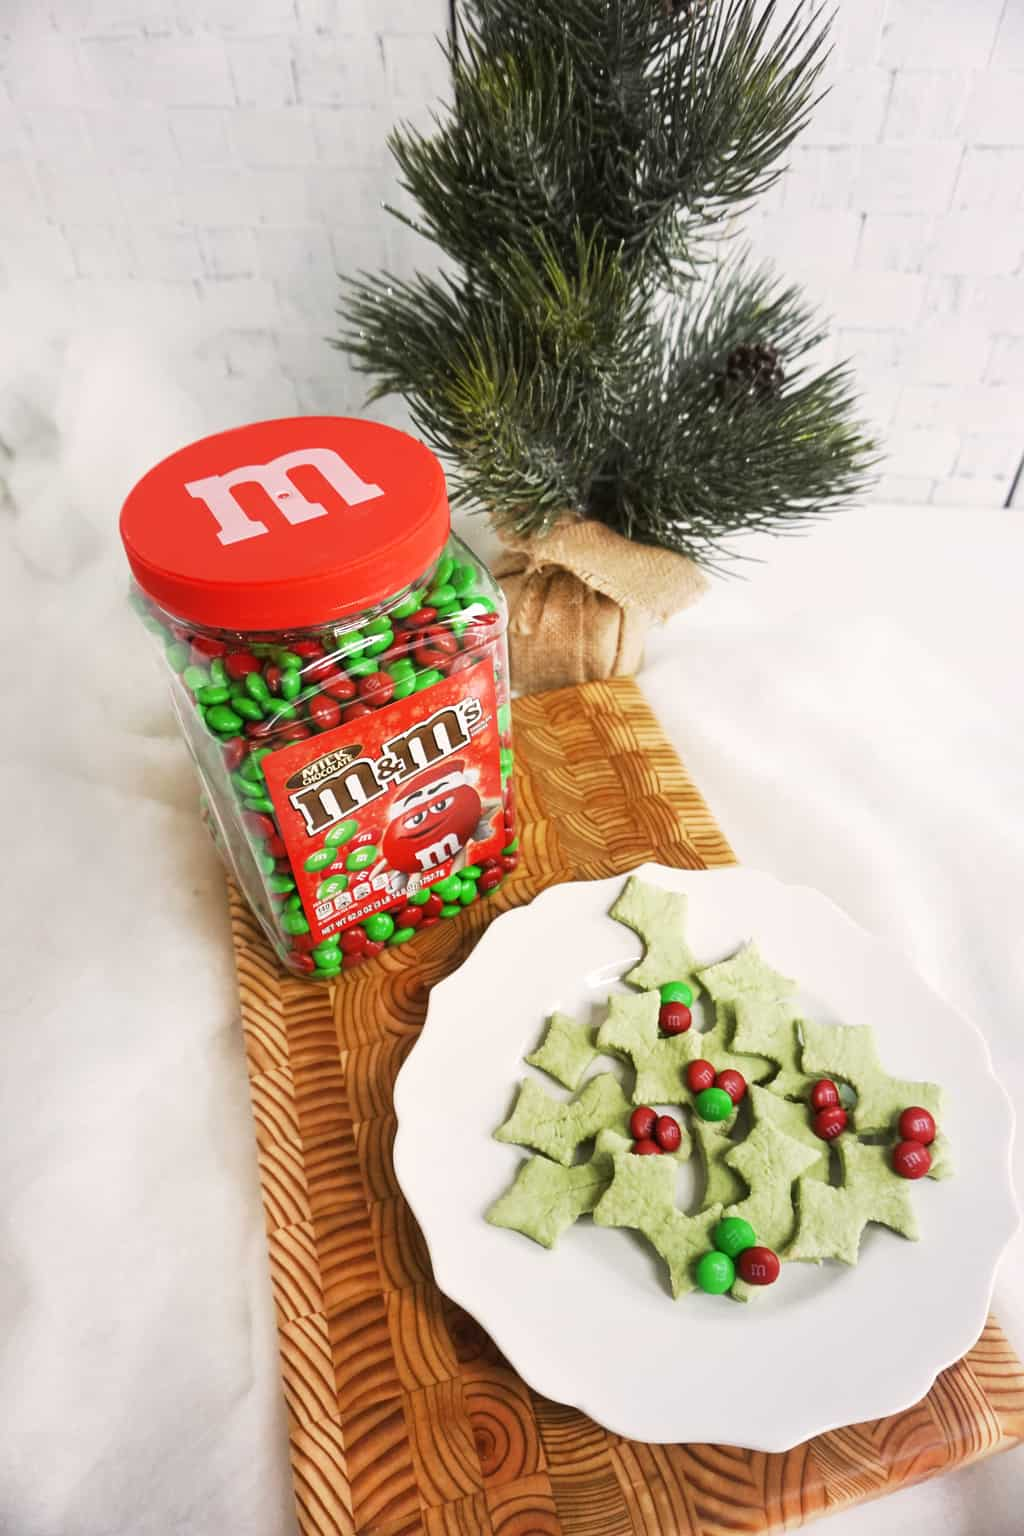 My favorite, most exciting and tasty cookie that joins forces with another love of mine, M&M'S®, is this awesome recipe for 4-Ingredient Holly Cookies. Seriously, only 4 ingredients. I'm in love. #ad #christmascookies